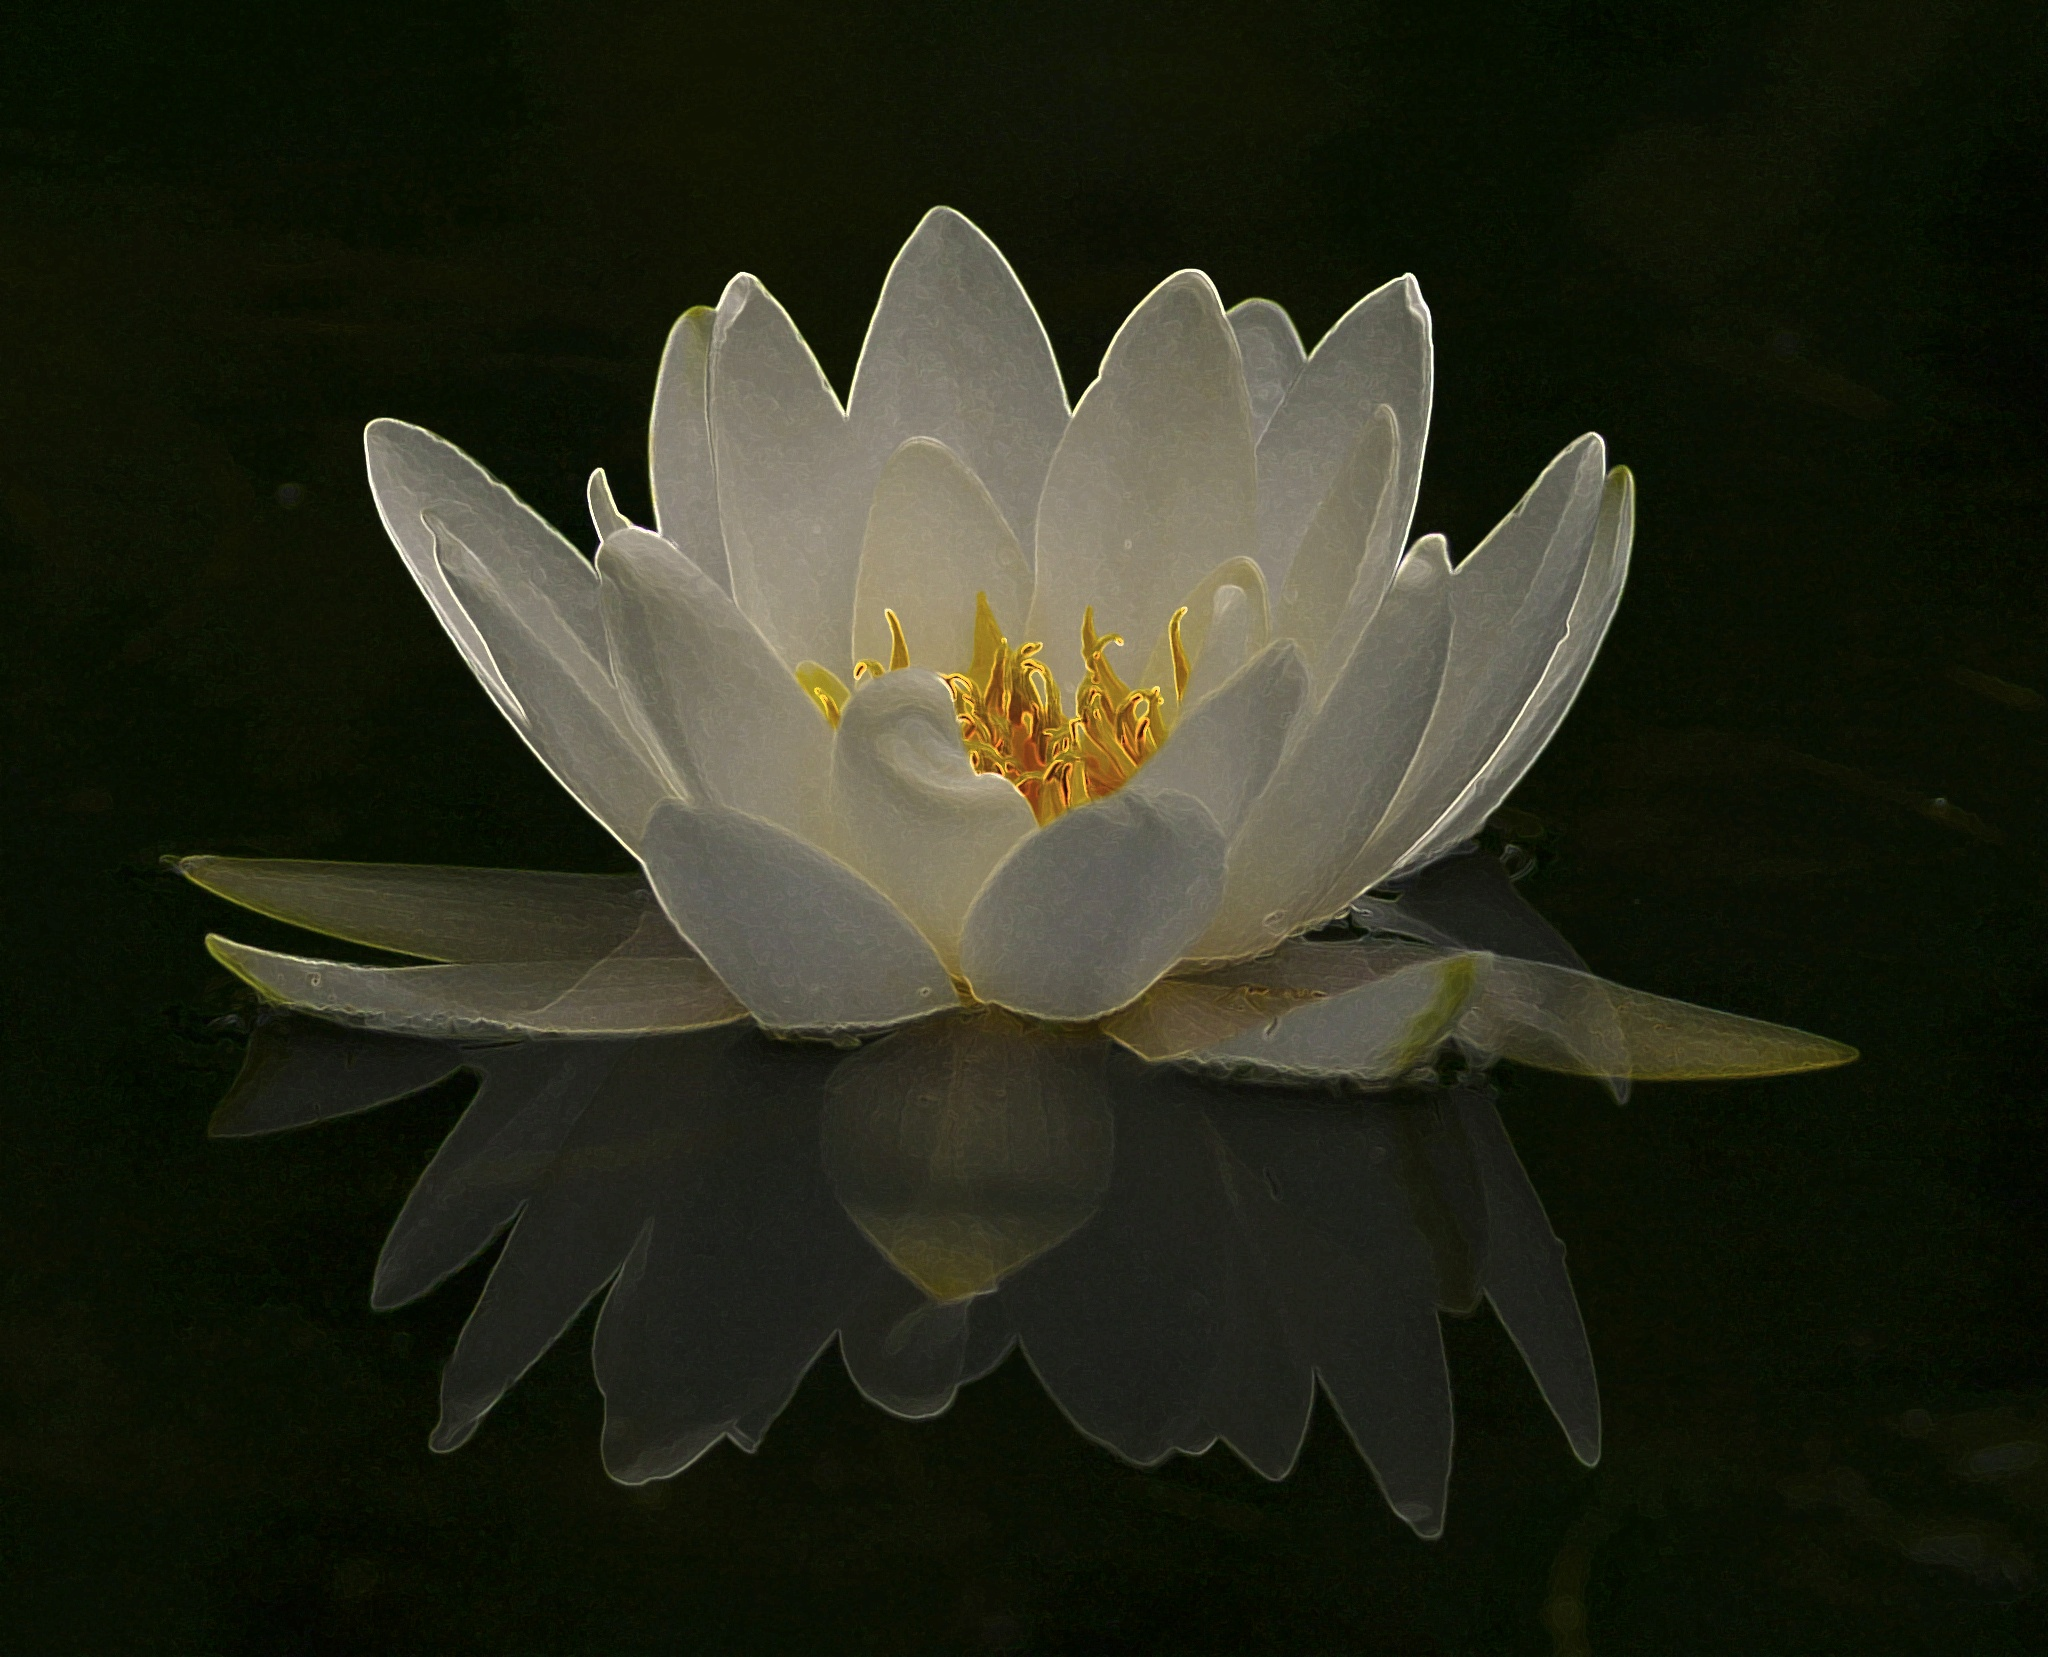 Waterlily by Hannie vd